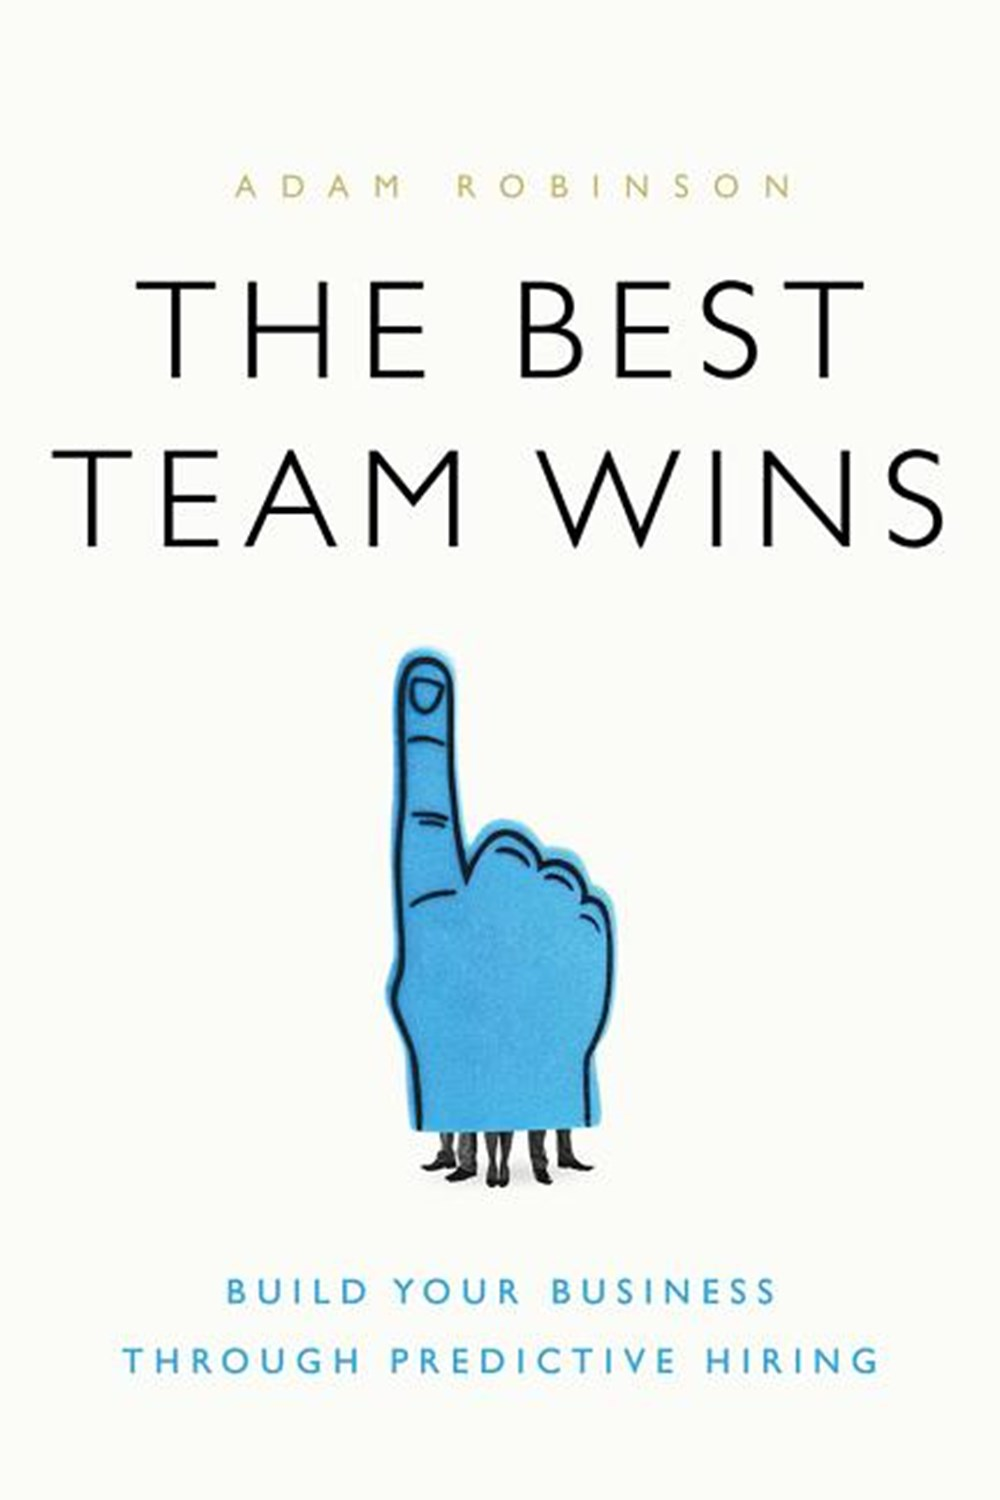 Best Team Wins Build Your Business Through Predictive Hiring